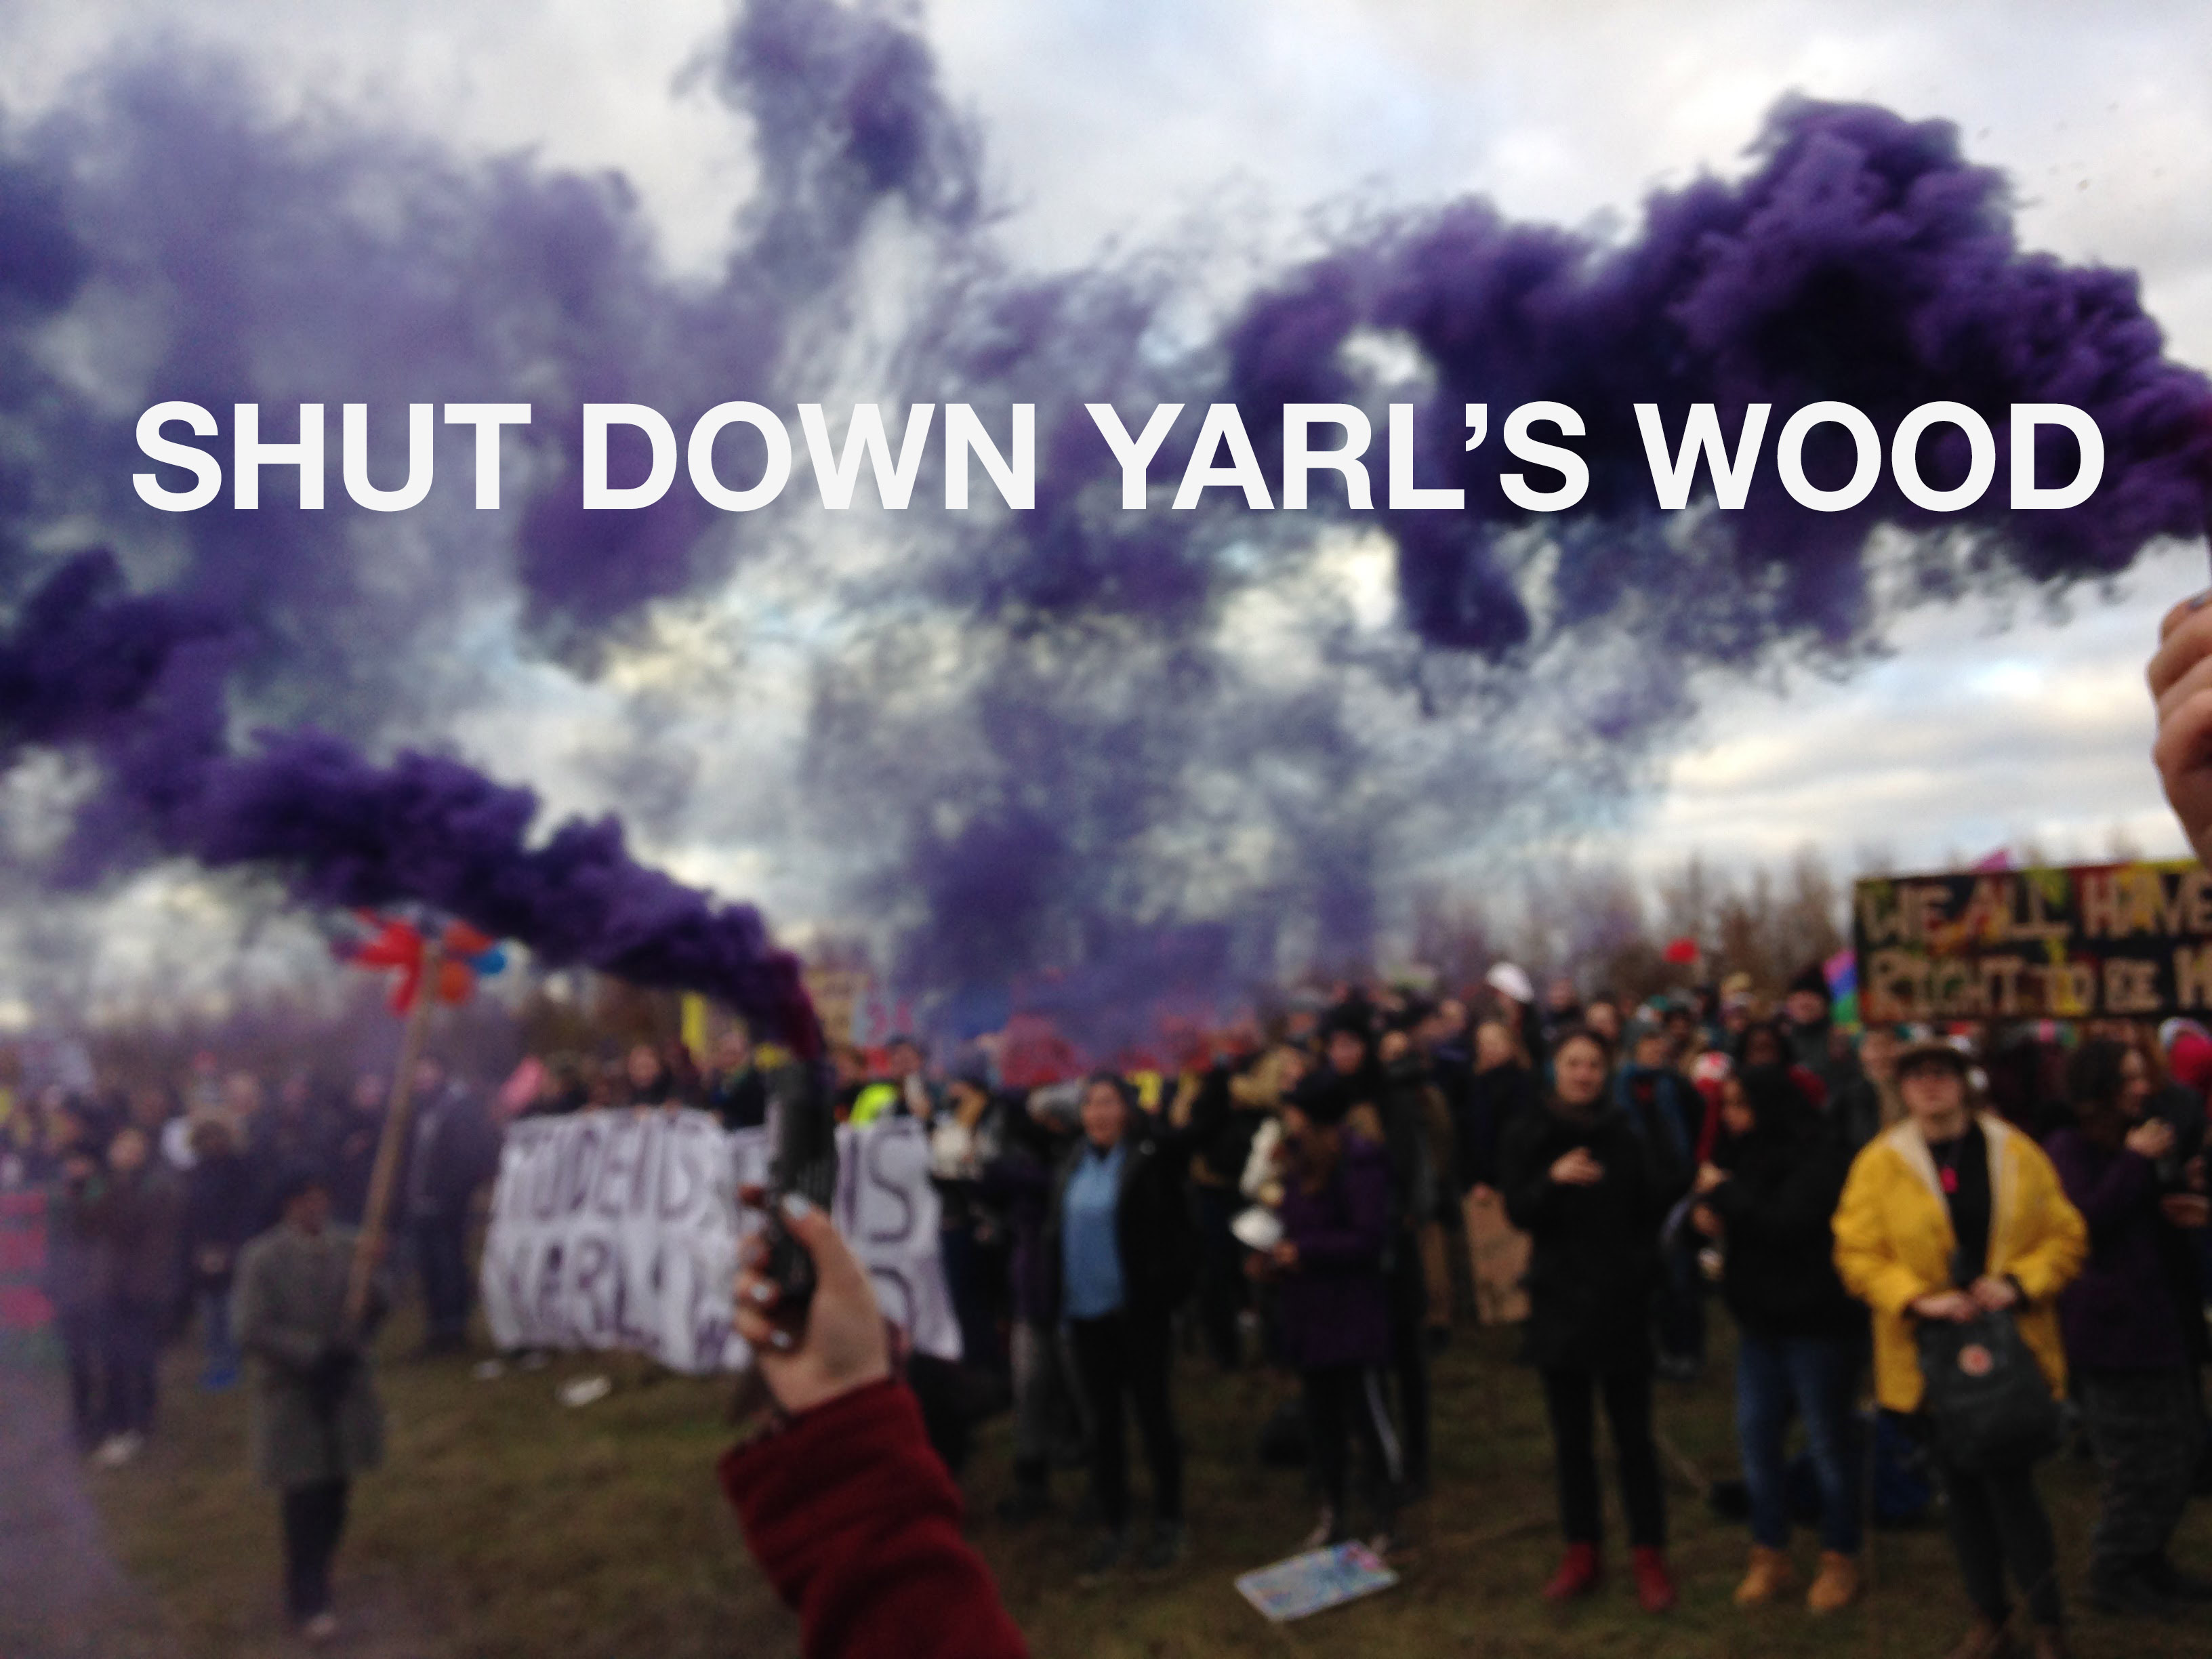 shut down yarls wood